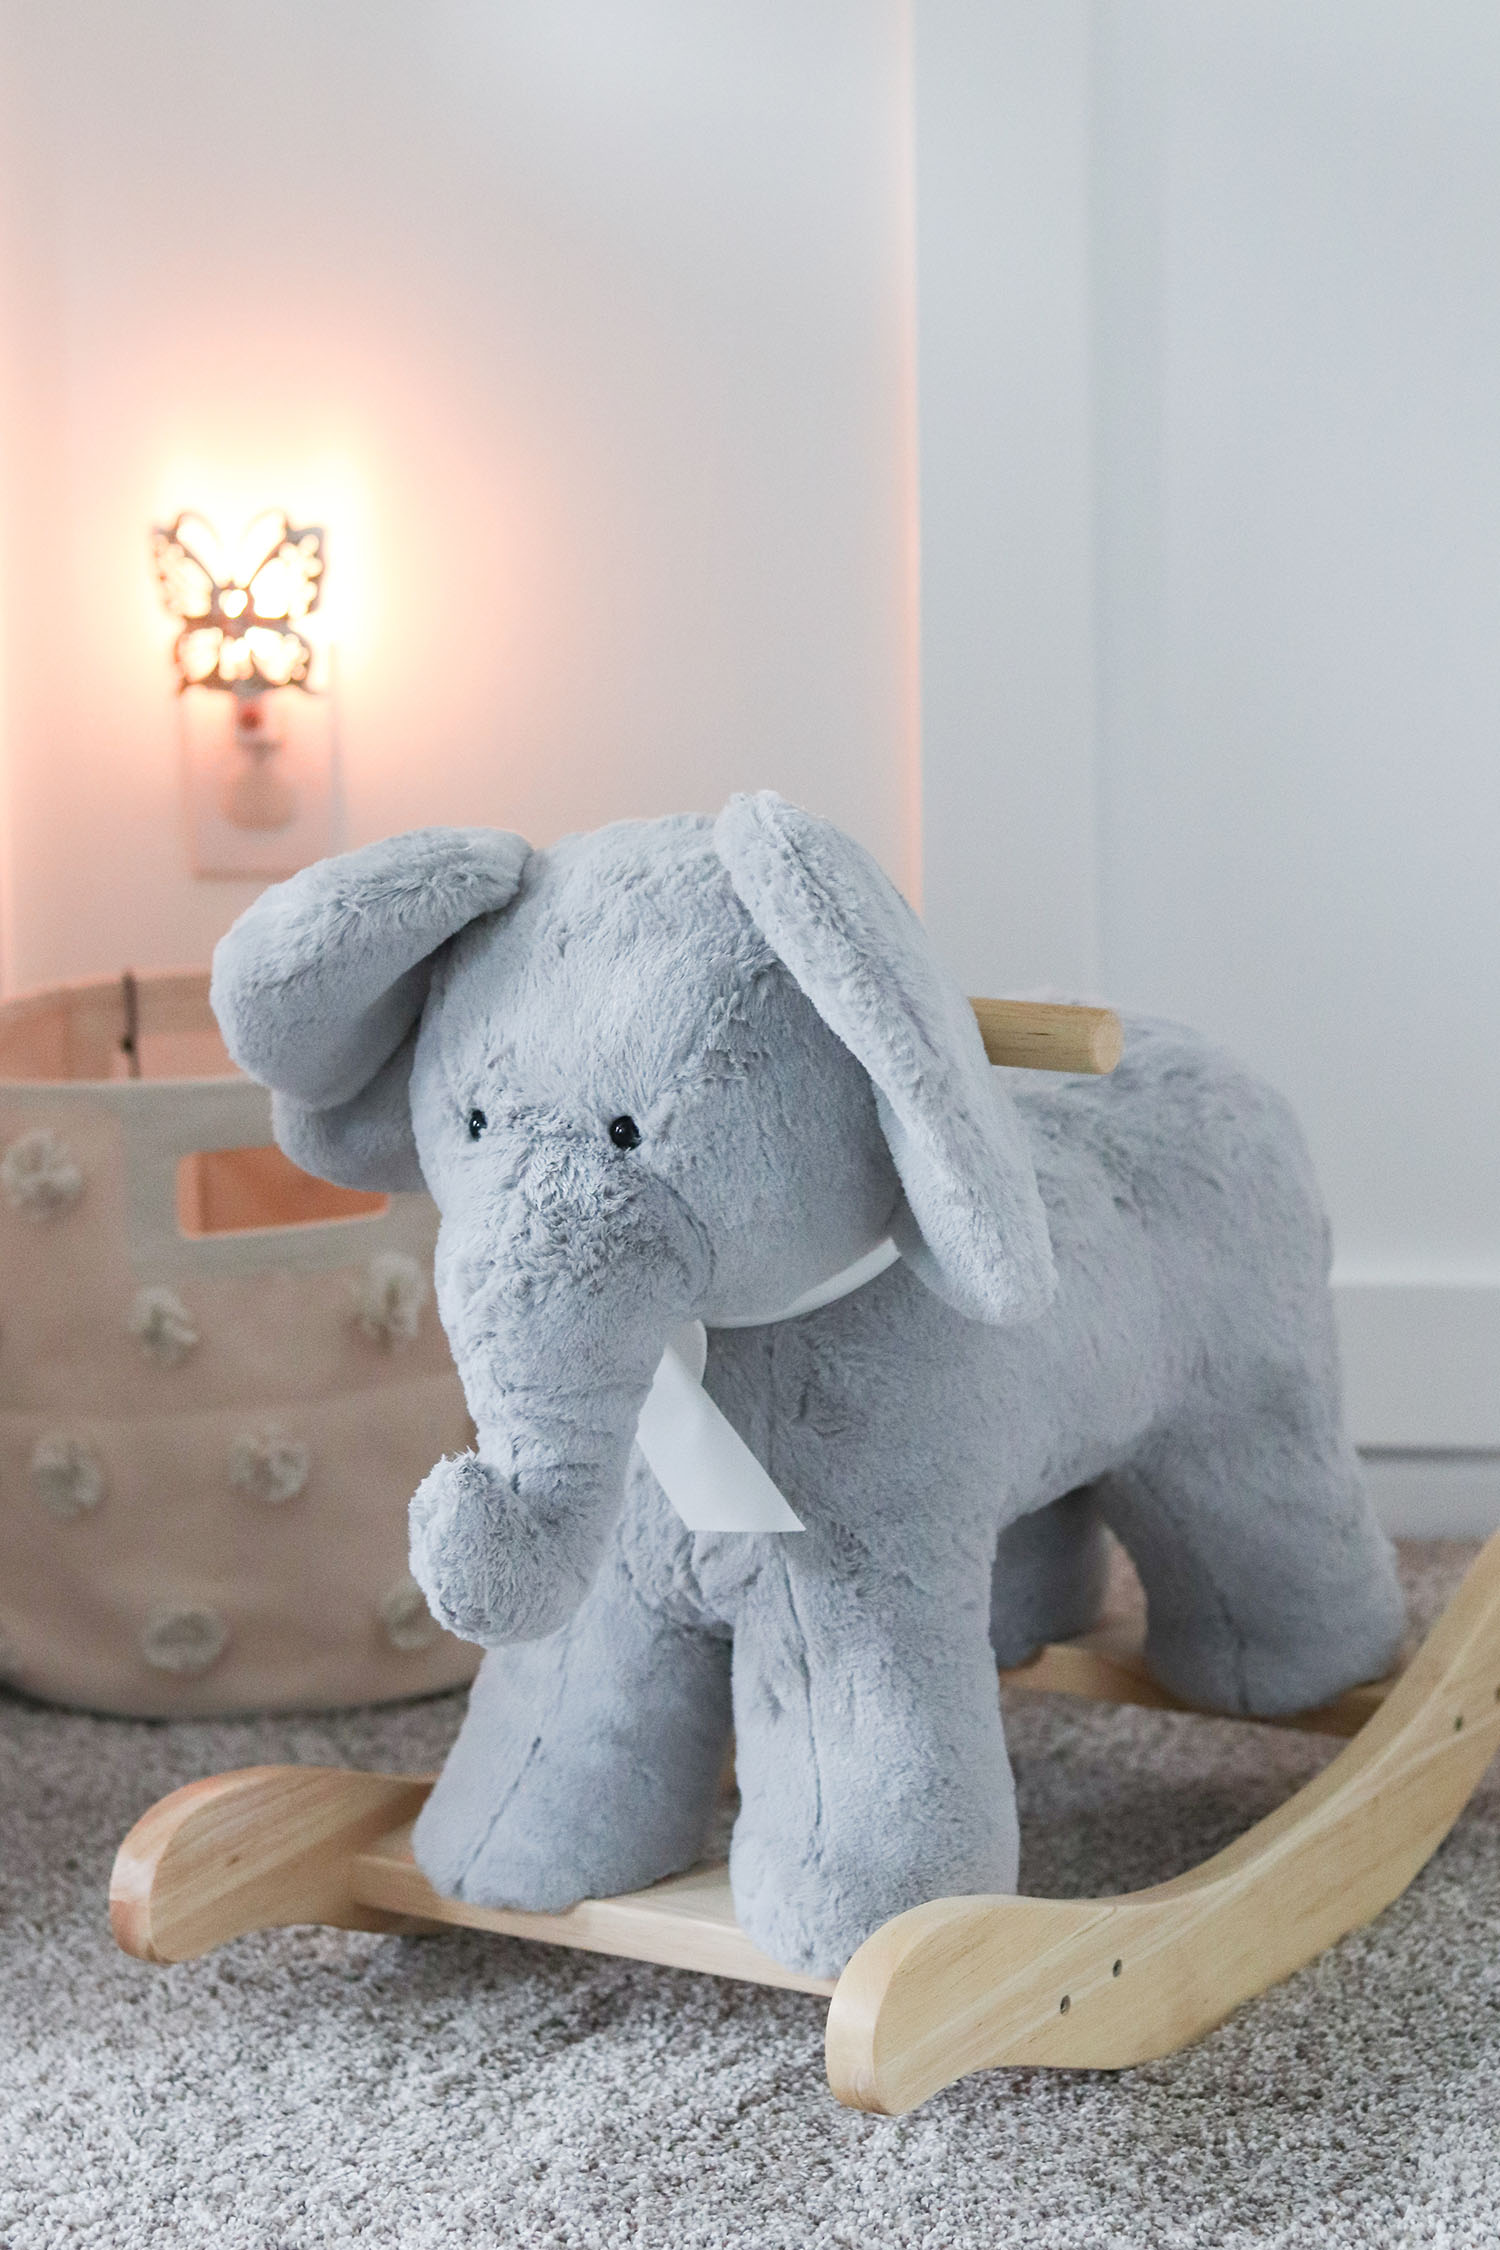 Pottery Barn Kids Elephant Rocker and Pehr Designs Canvas Tote in Baby Girl Nursery Decor Ideas | Lavender and Grey Baby Nursery Ideas